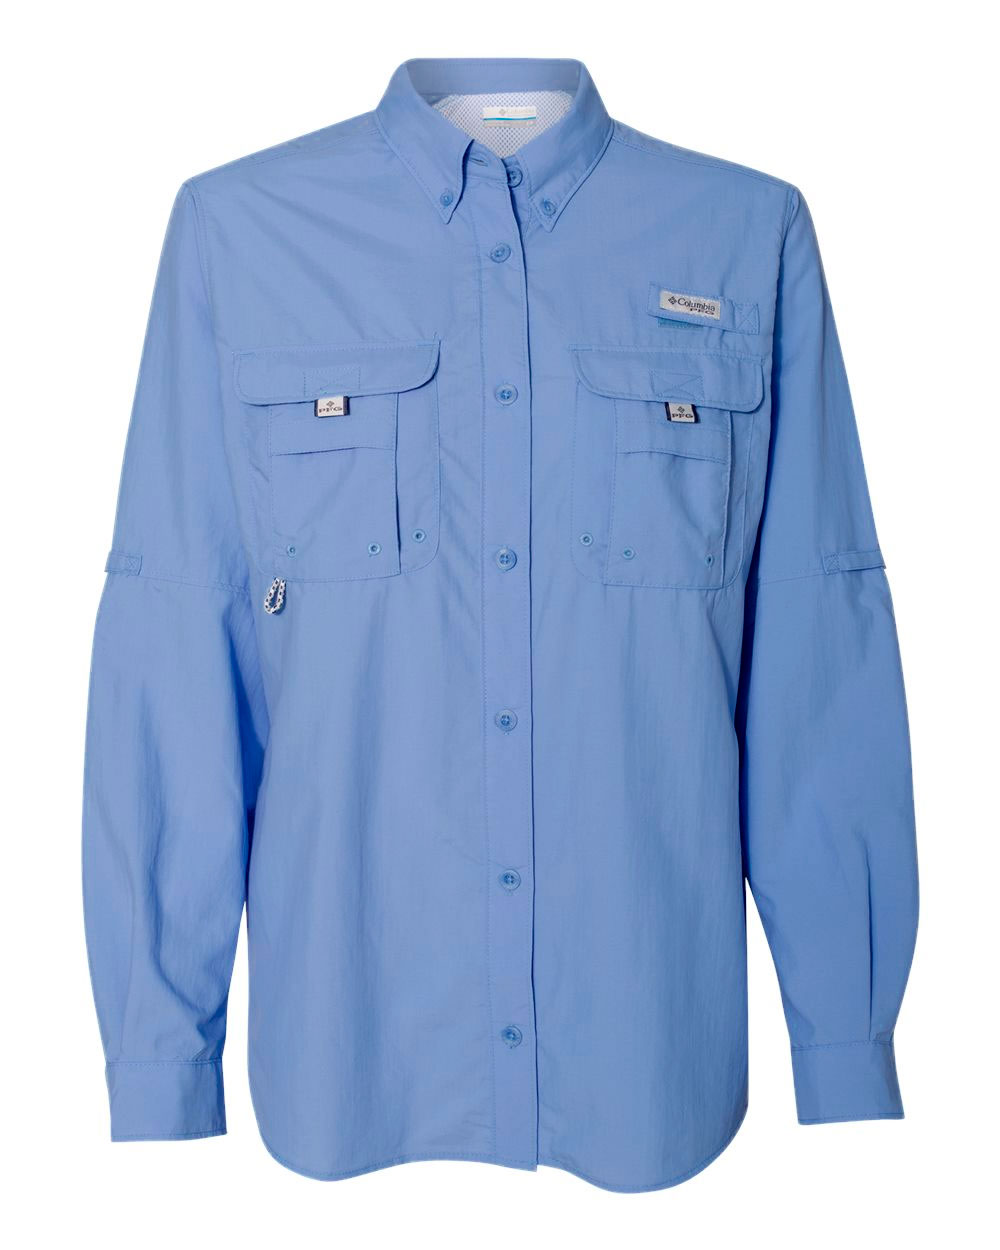 Custom columbia womens bahama ii long sleeve fishing shirt Columbia womens fishing shirt